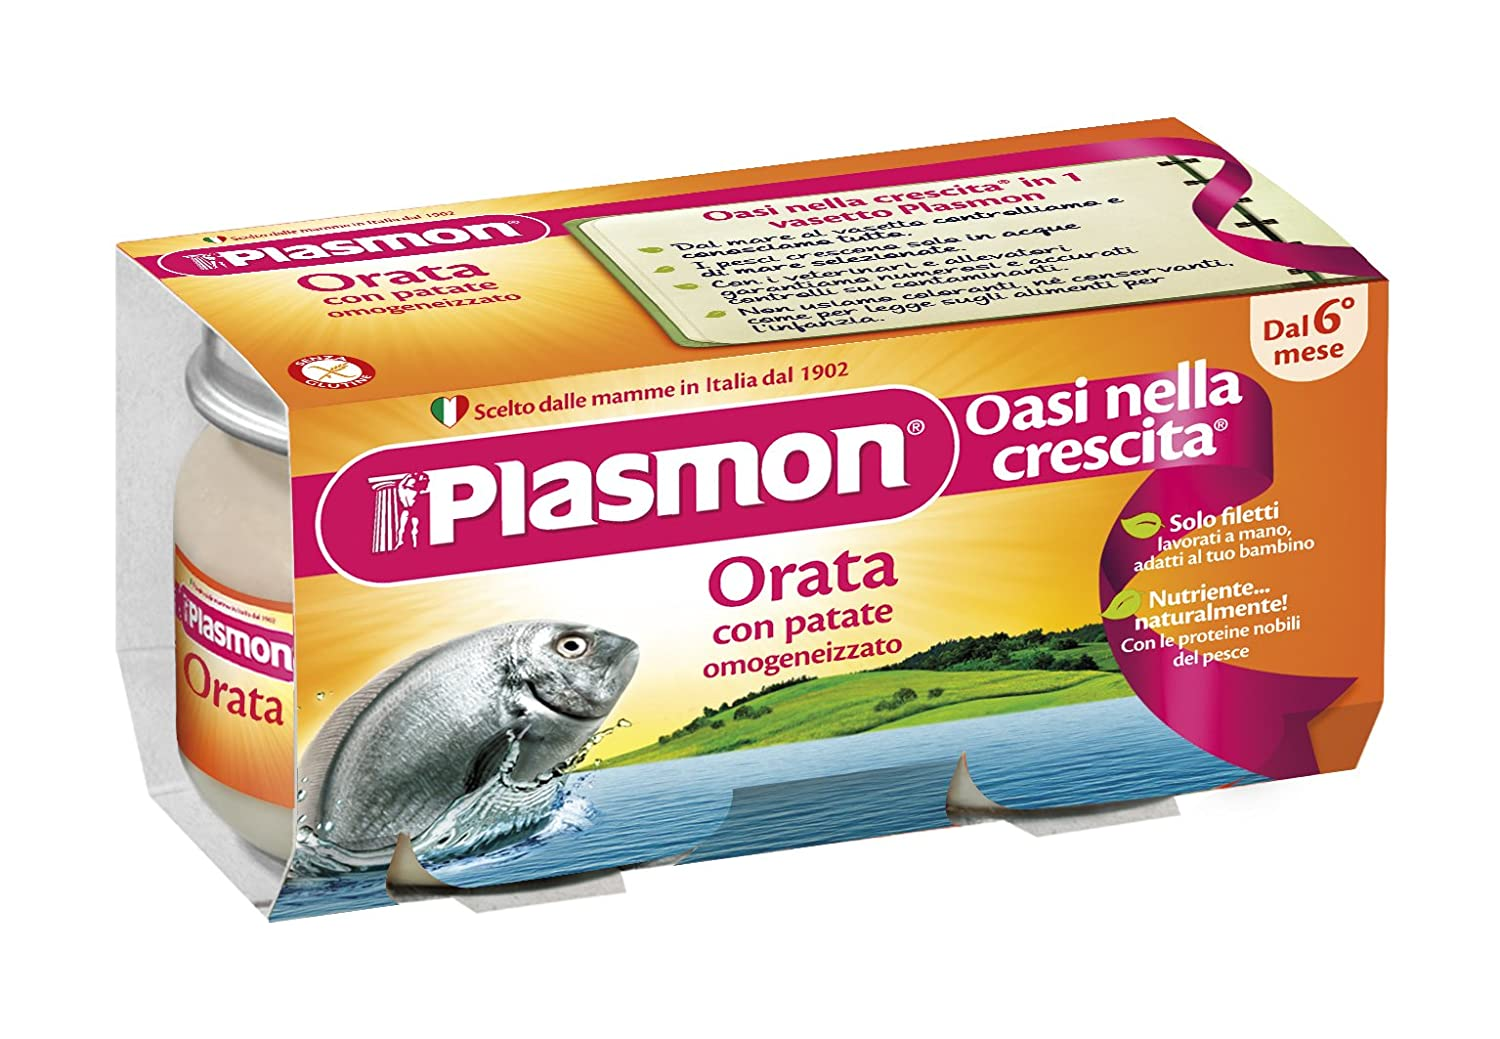 Plasmon Sea Bream Fillet with Potatoes Meal Puree (2x80g) 70125300